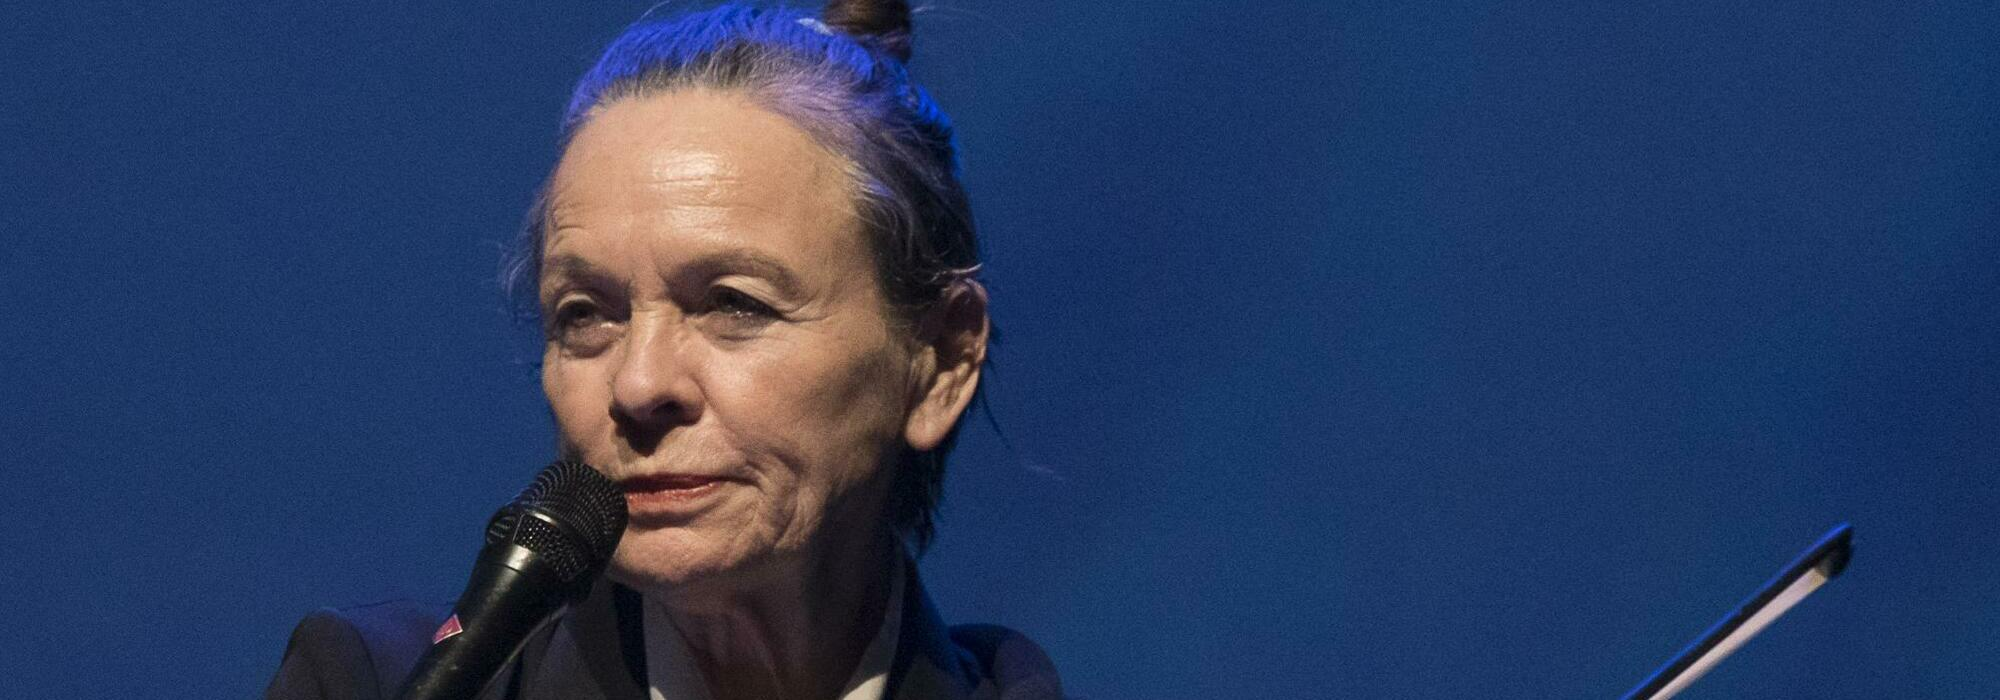 A Laurie Anderson live event